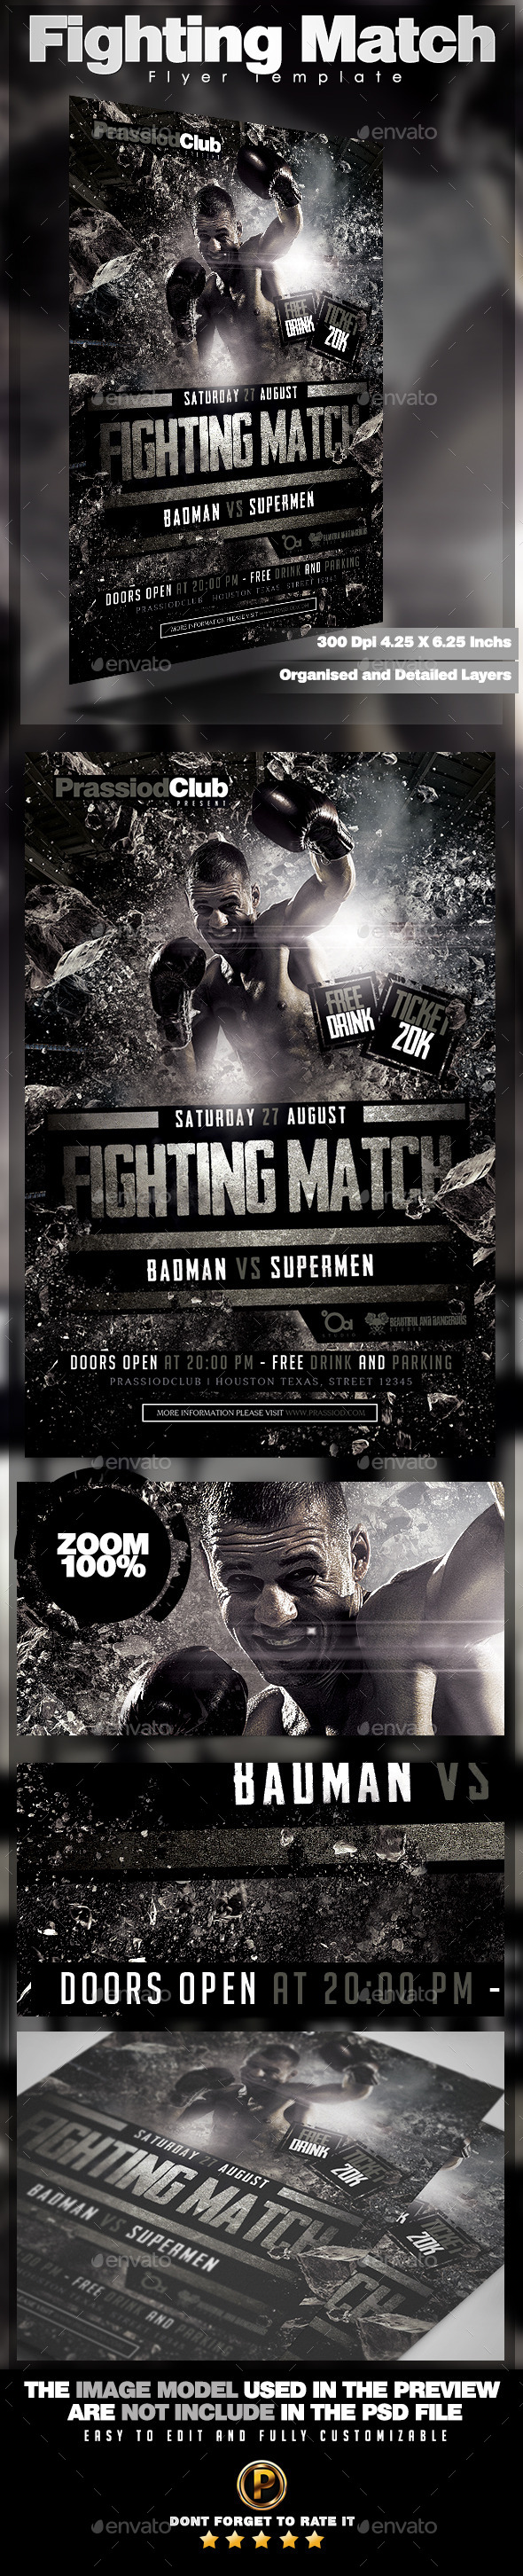 Fighting Match Flyer Template - Sports Events